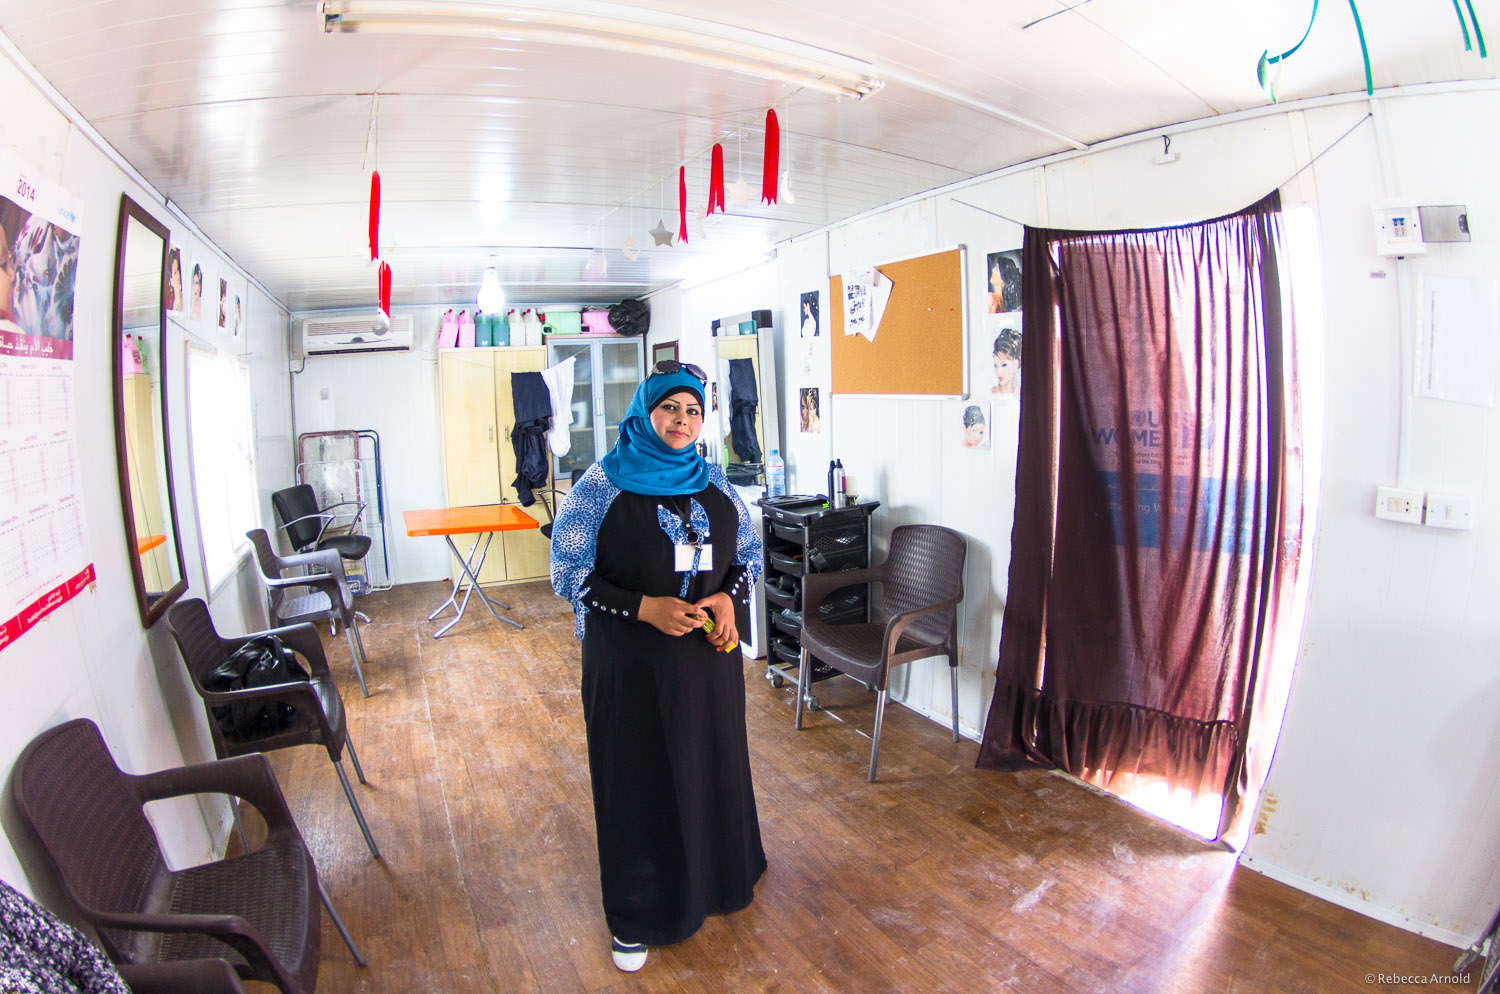 ARDD-Legal Aid partners with UNWomen on the Oasis Project . Creating a safe space and get skills training for Syrian women,like thishair salon. Zaatari Refugee Camp, Jordan